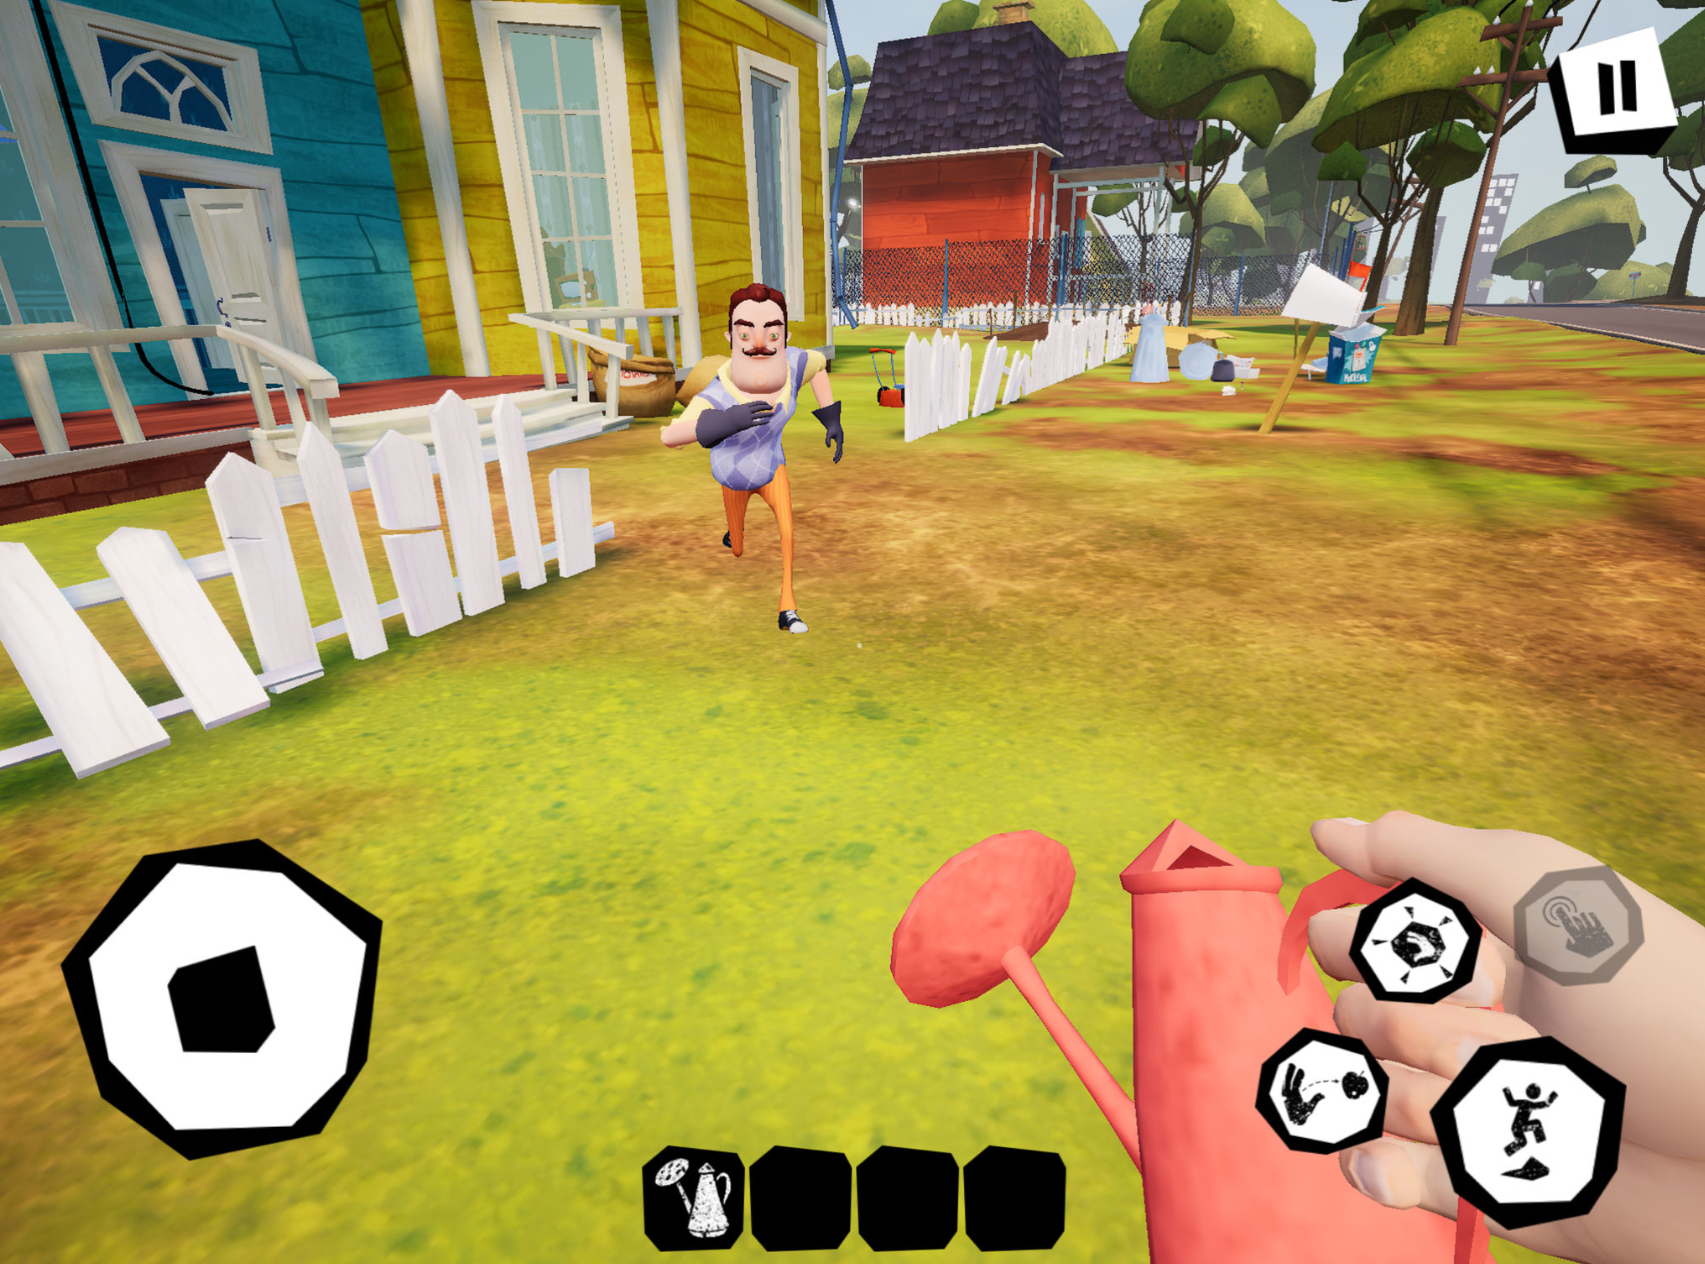 'Hello Neighbor' From tinyBuild Is Up for Pre-order on the App Store Ahead of Its July 26th Release